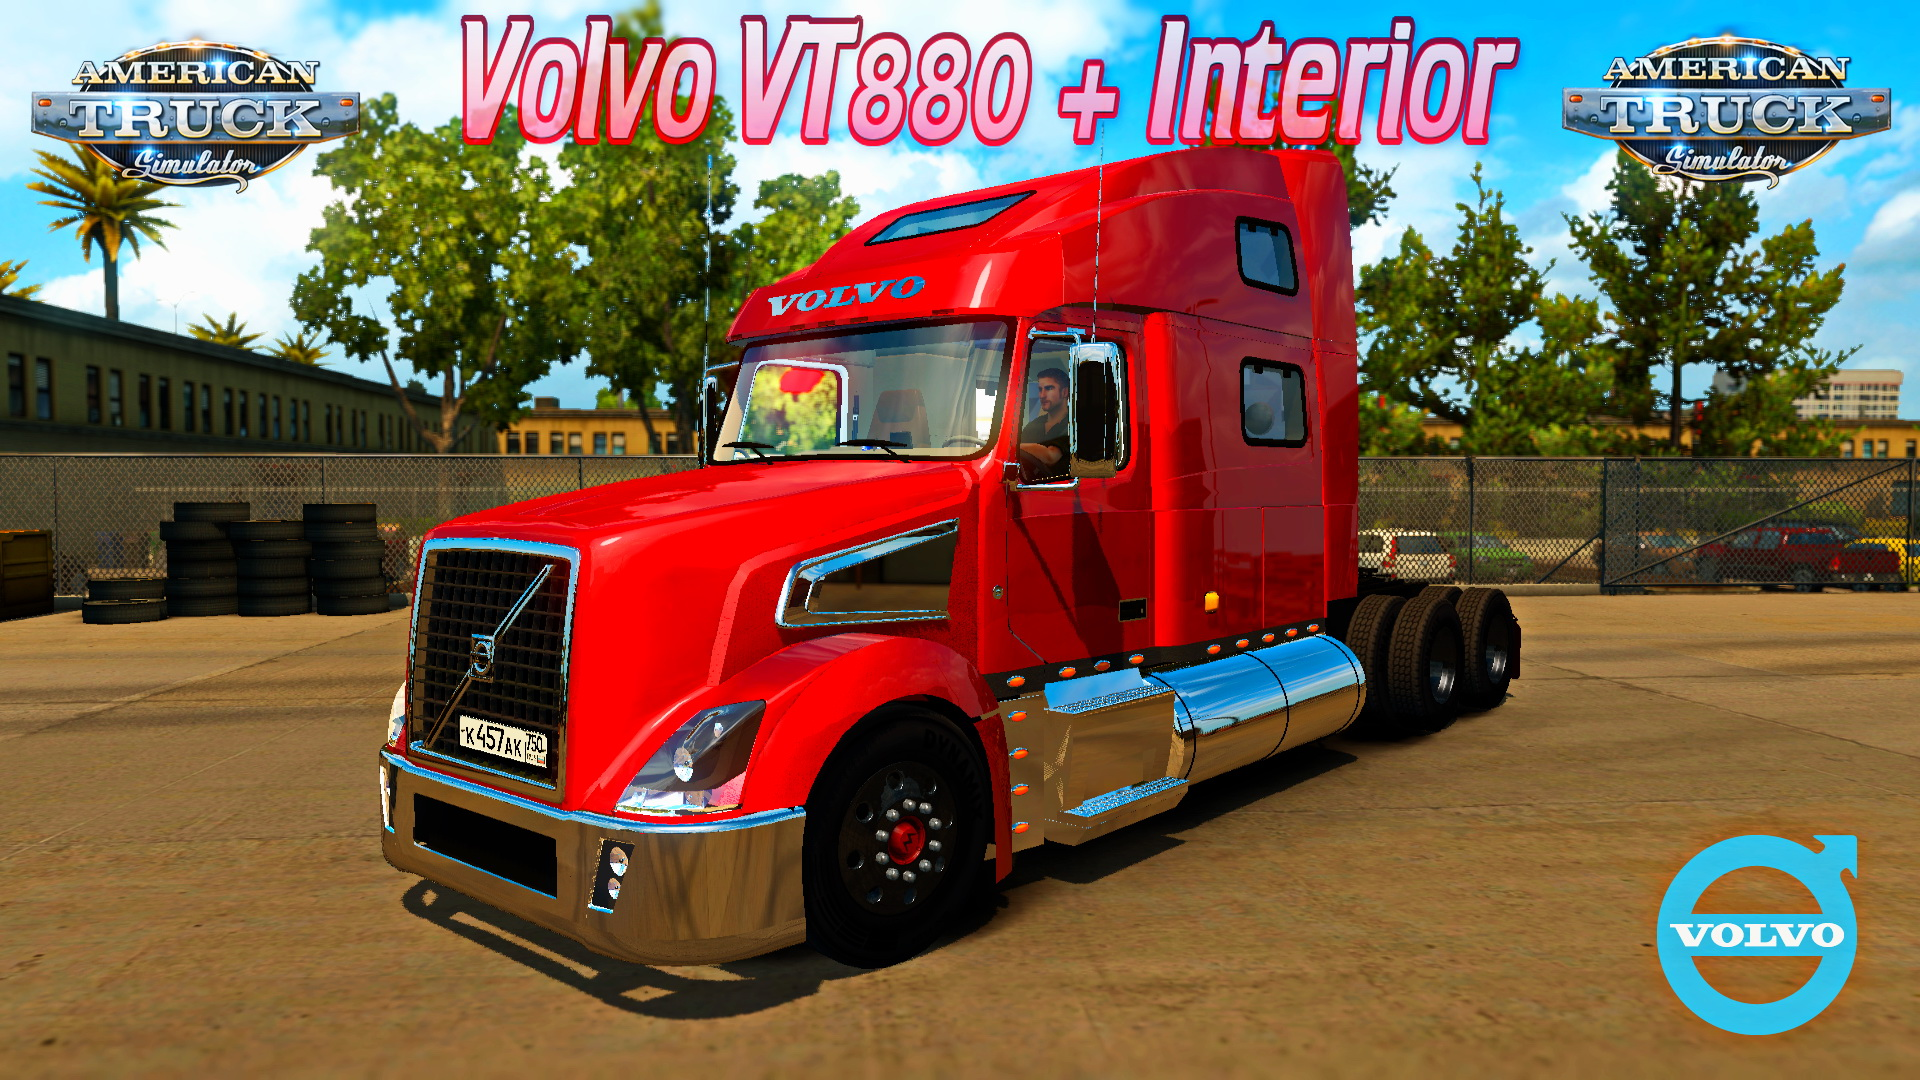 Volvo VT880 + Interior v1.0 for ATS